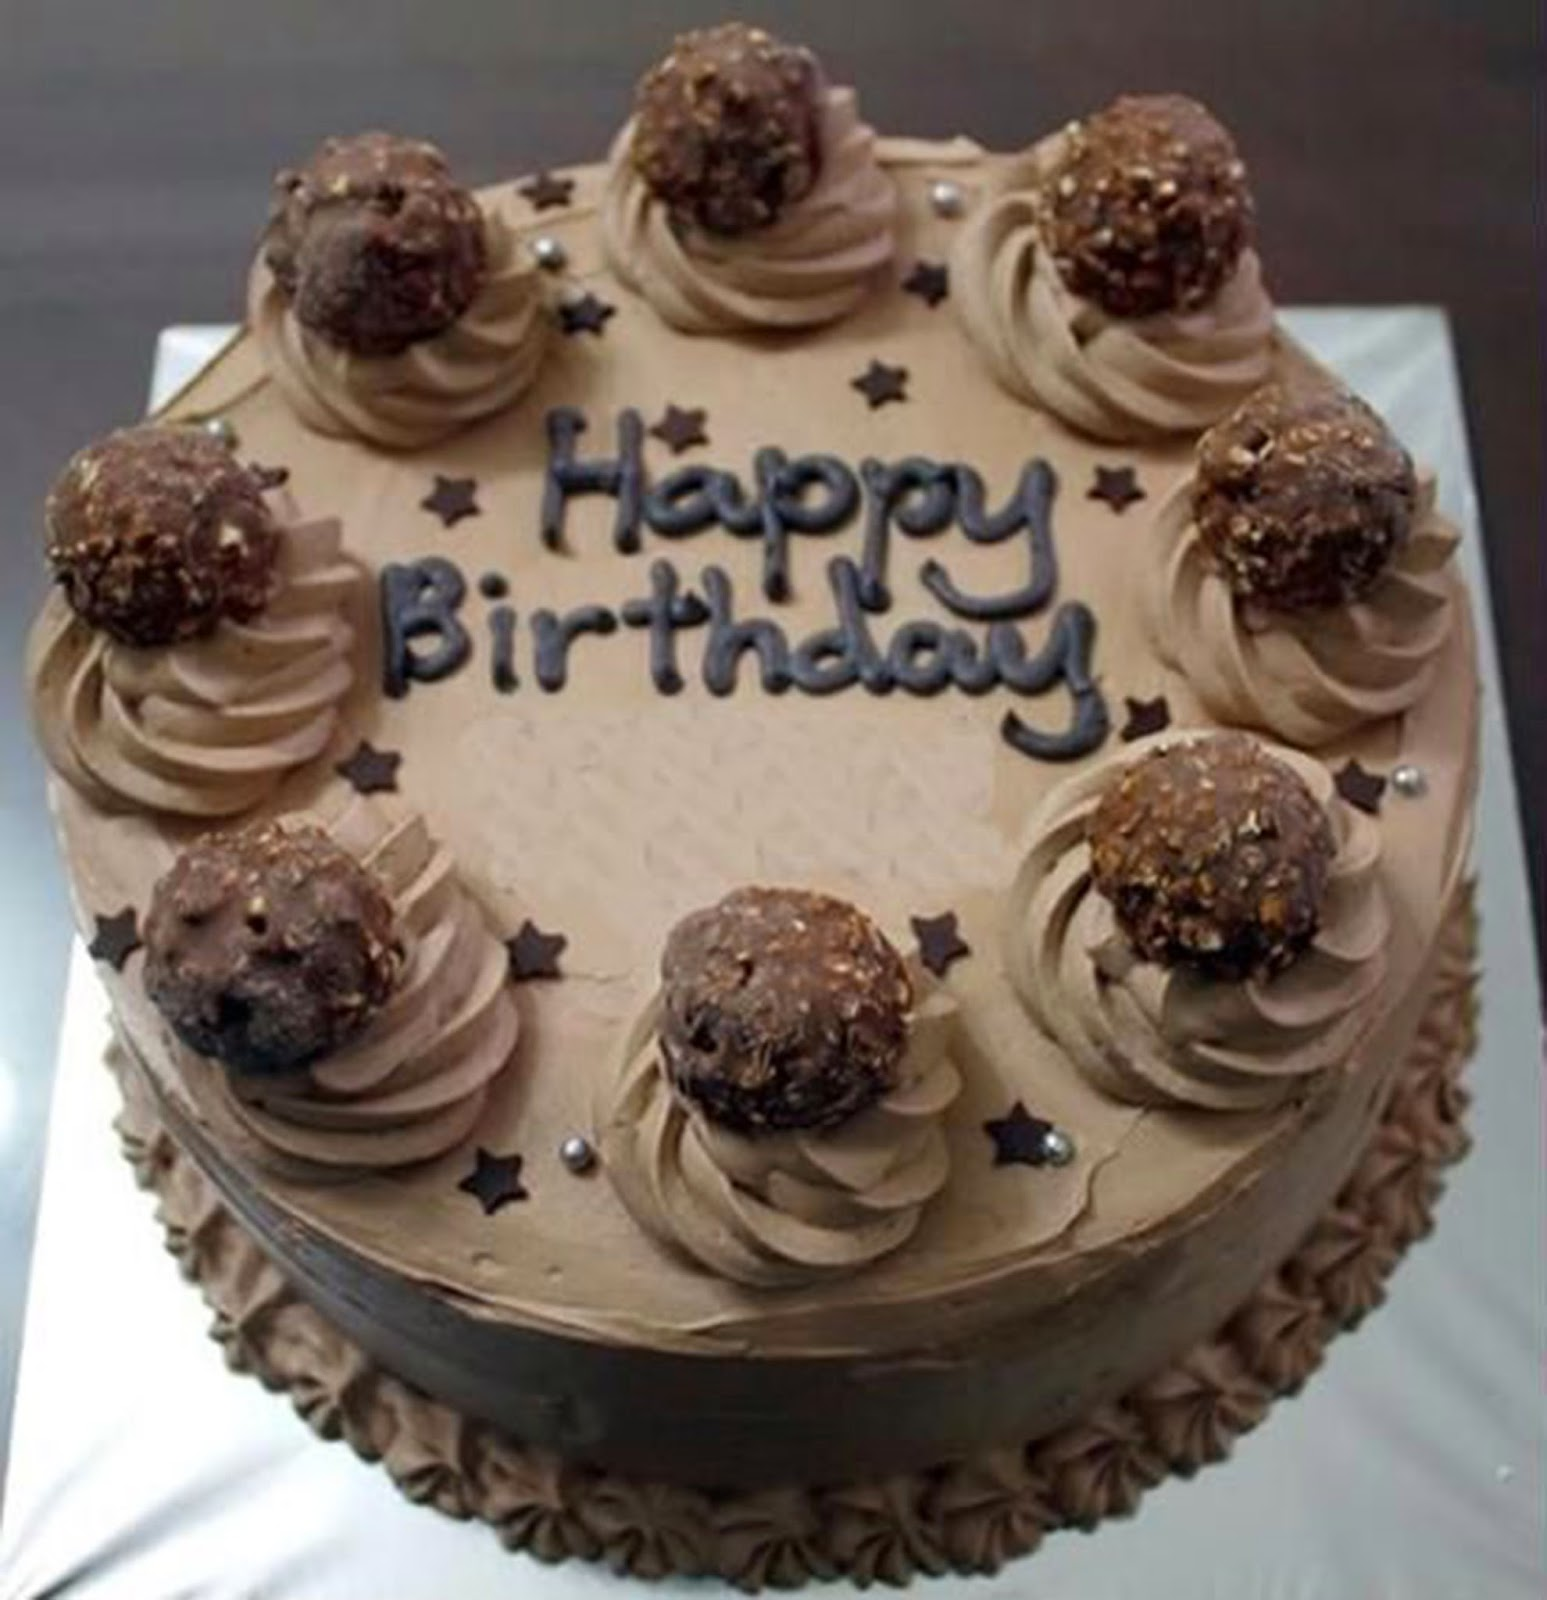 Happy-Birthday-Chocolate-Cake-Image-HD-Wide